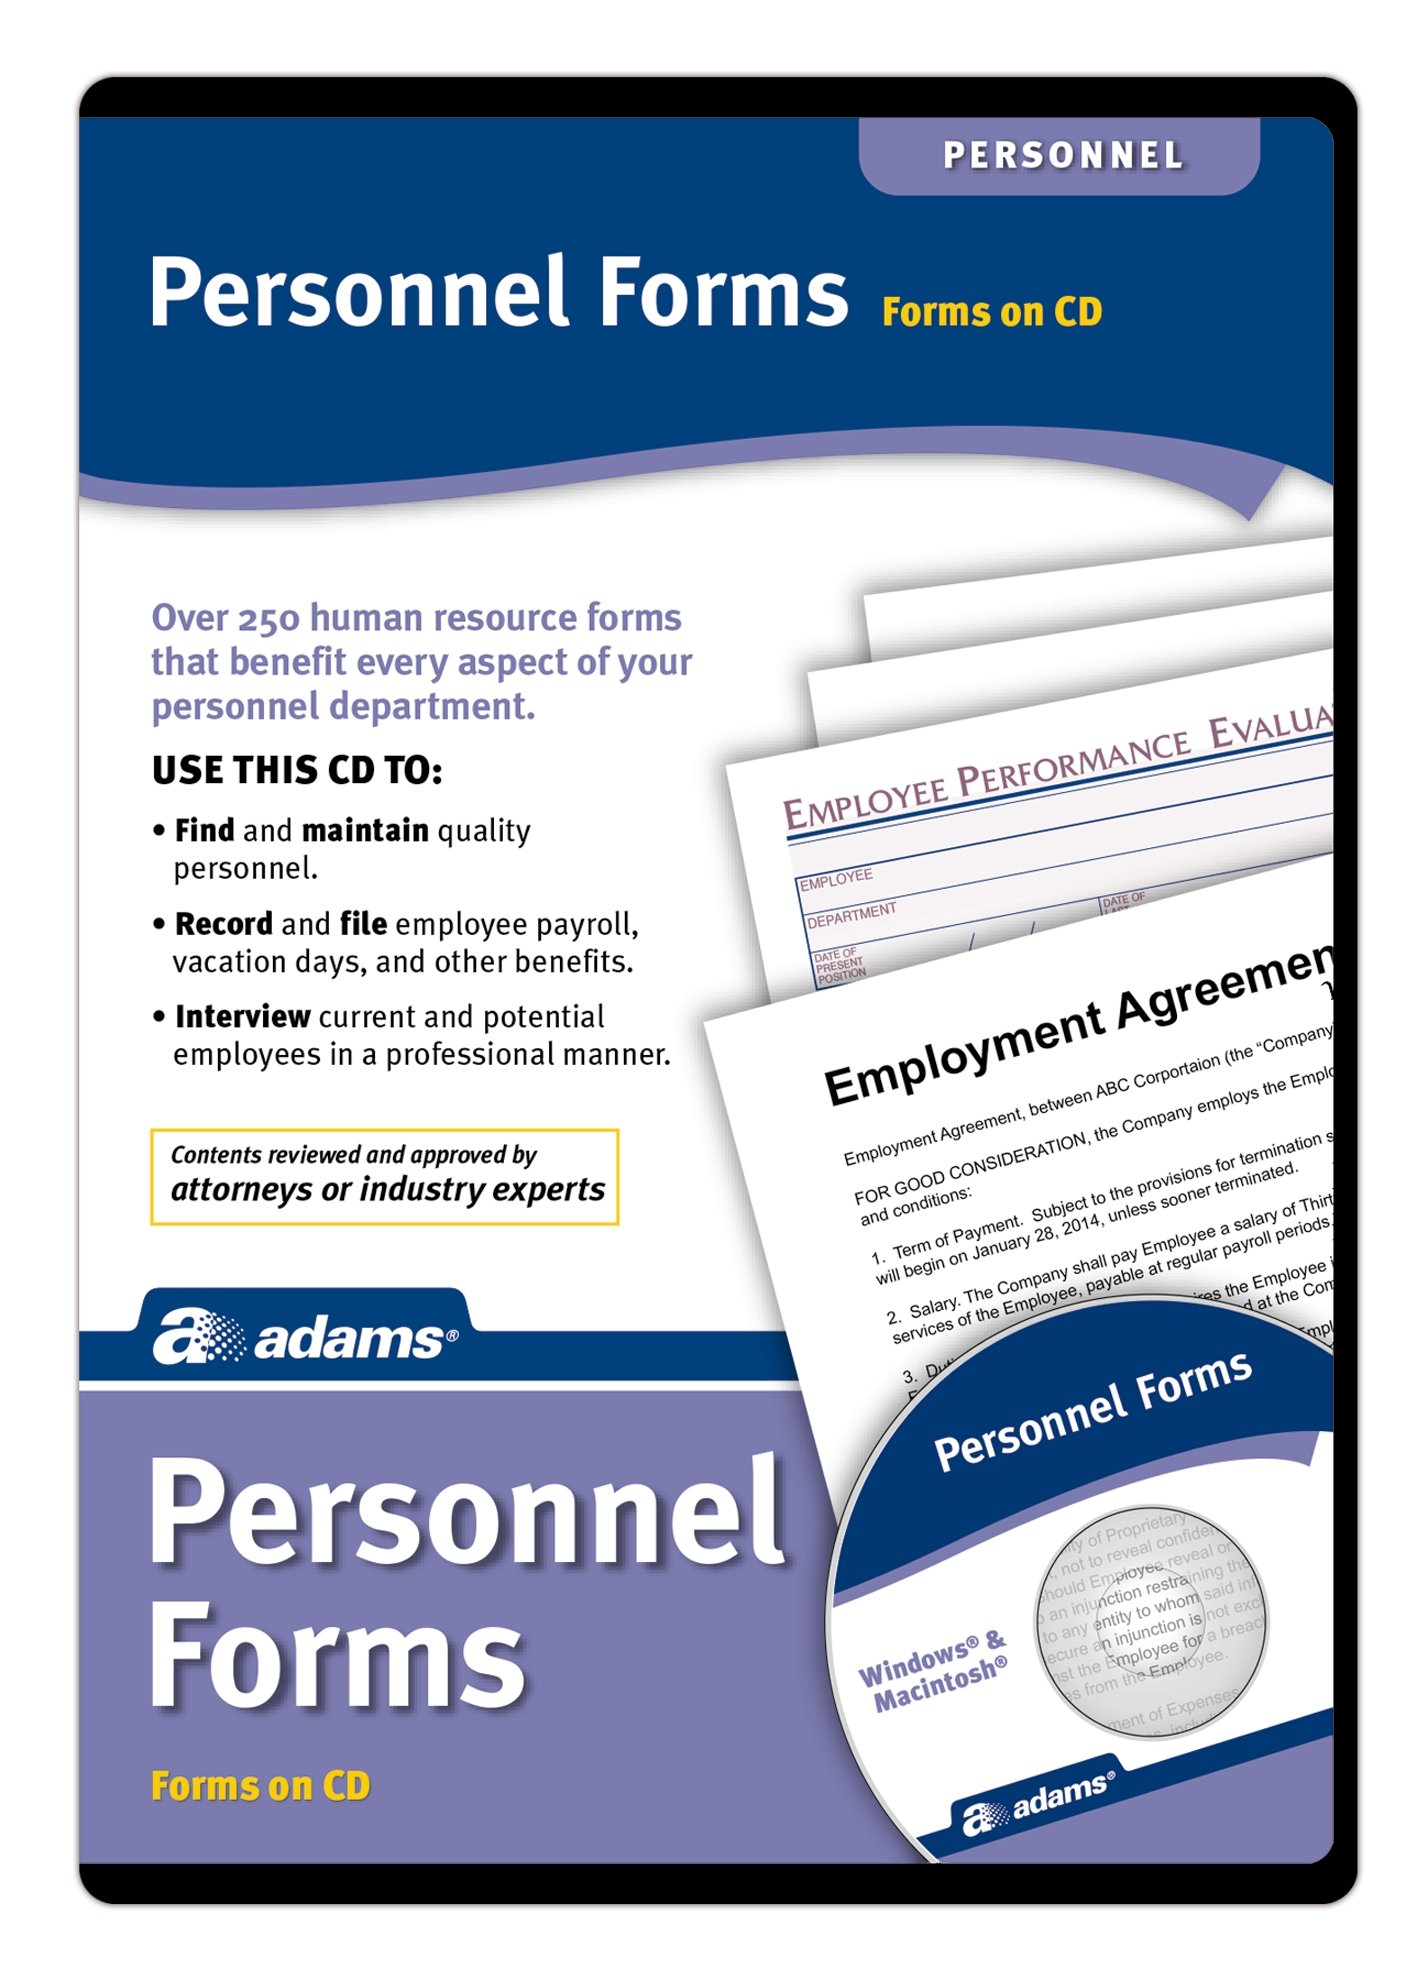 Adams Employee Personnel Forms CD, Over 250 Human Resource Forms on CD (HR453)